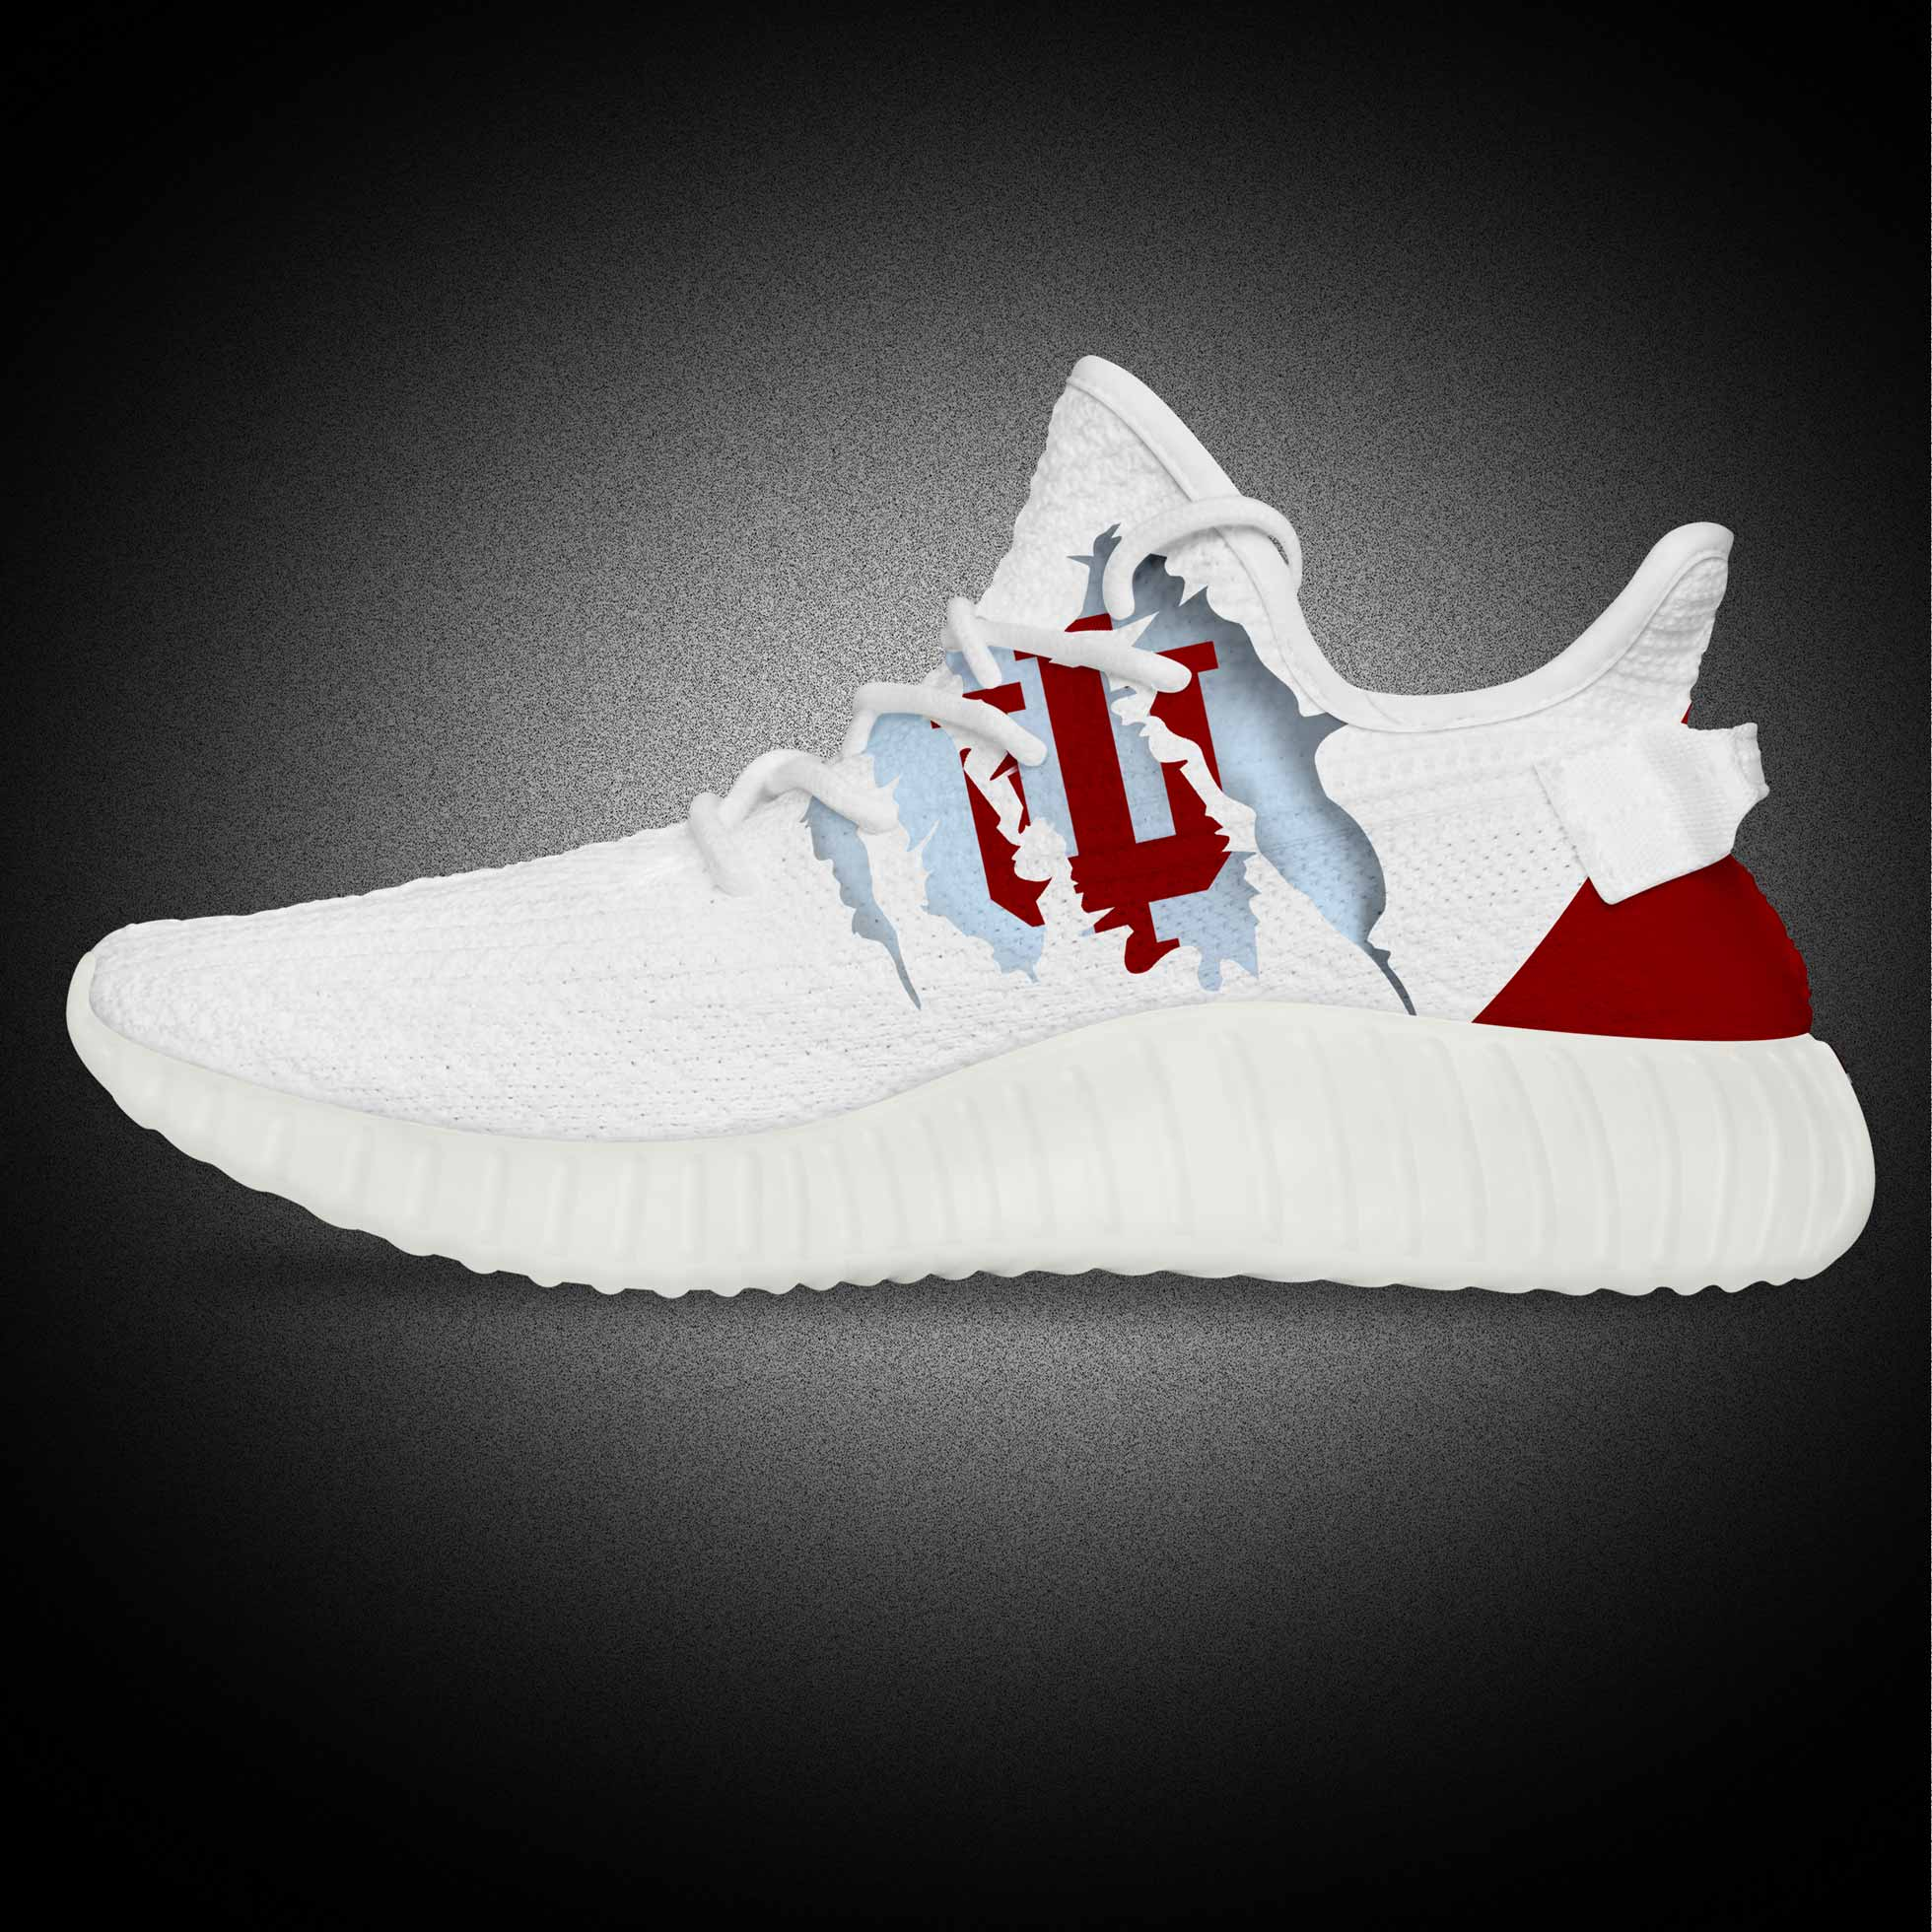 Custom Hip Hop Style Customized Gift Yeezy Fashion Sneakers